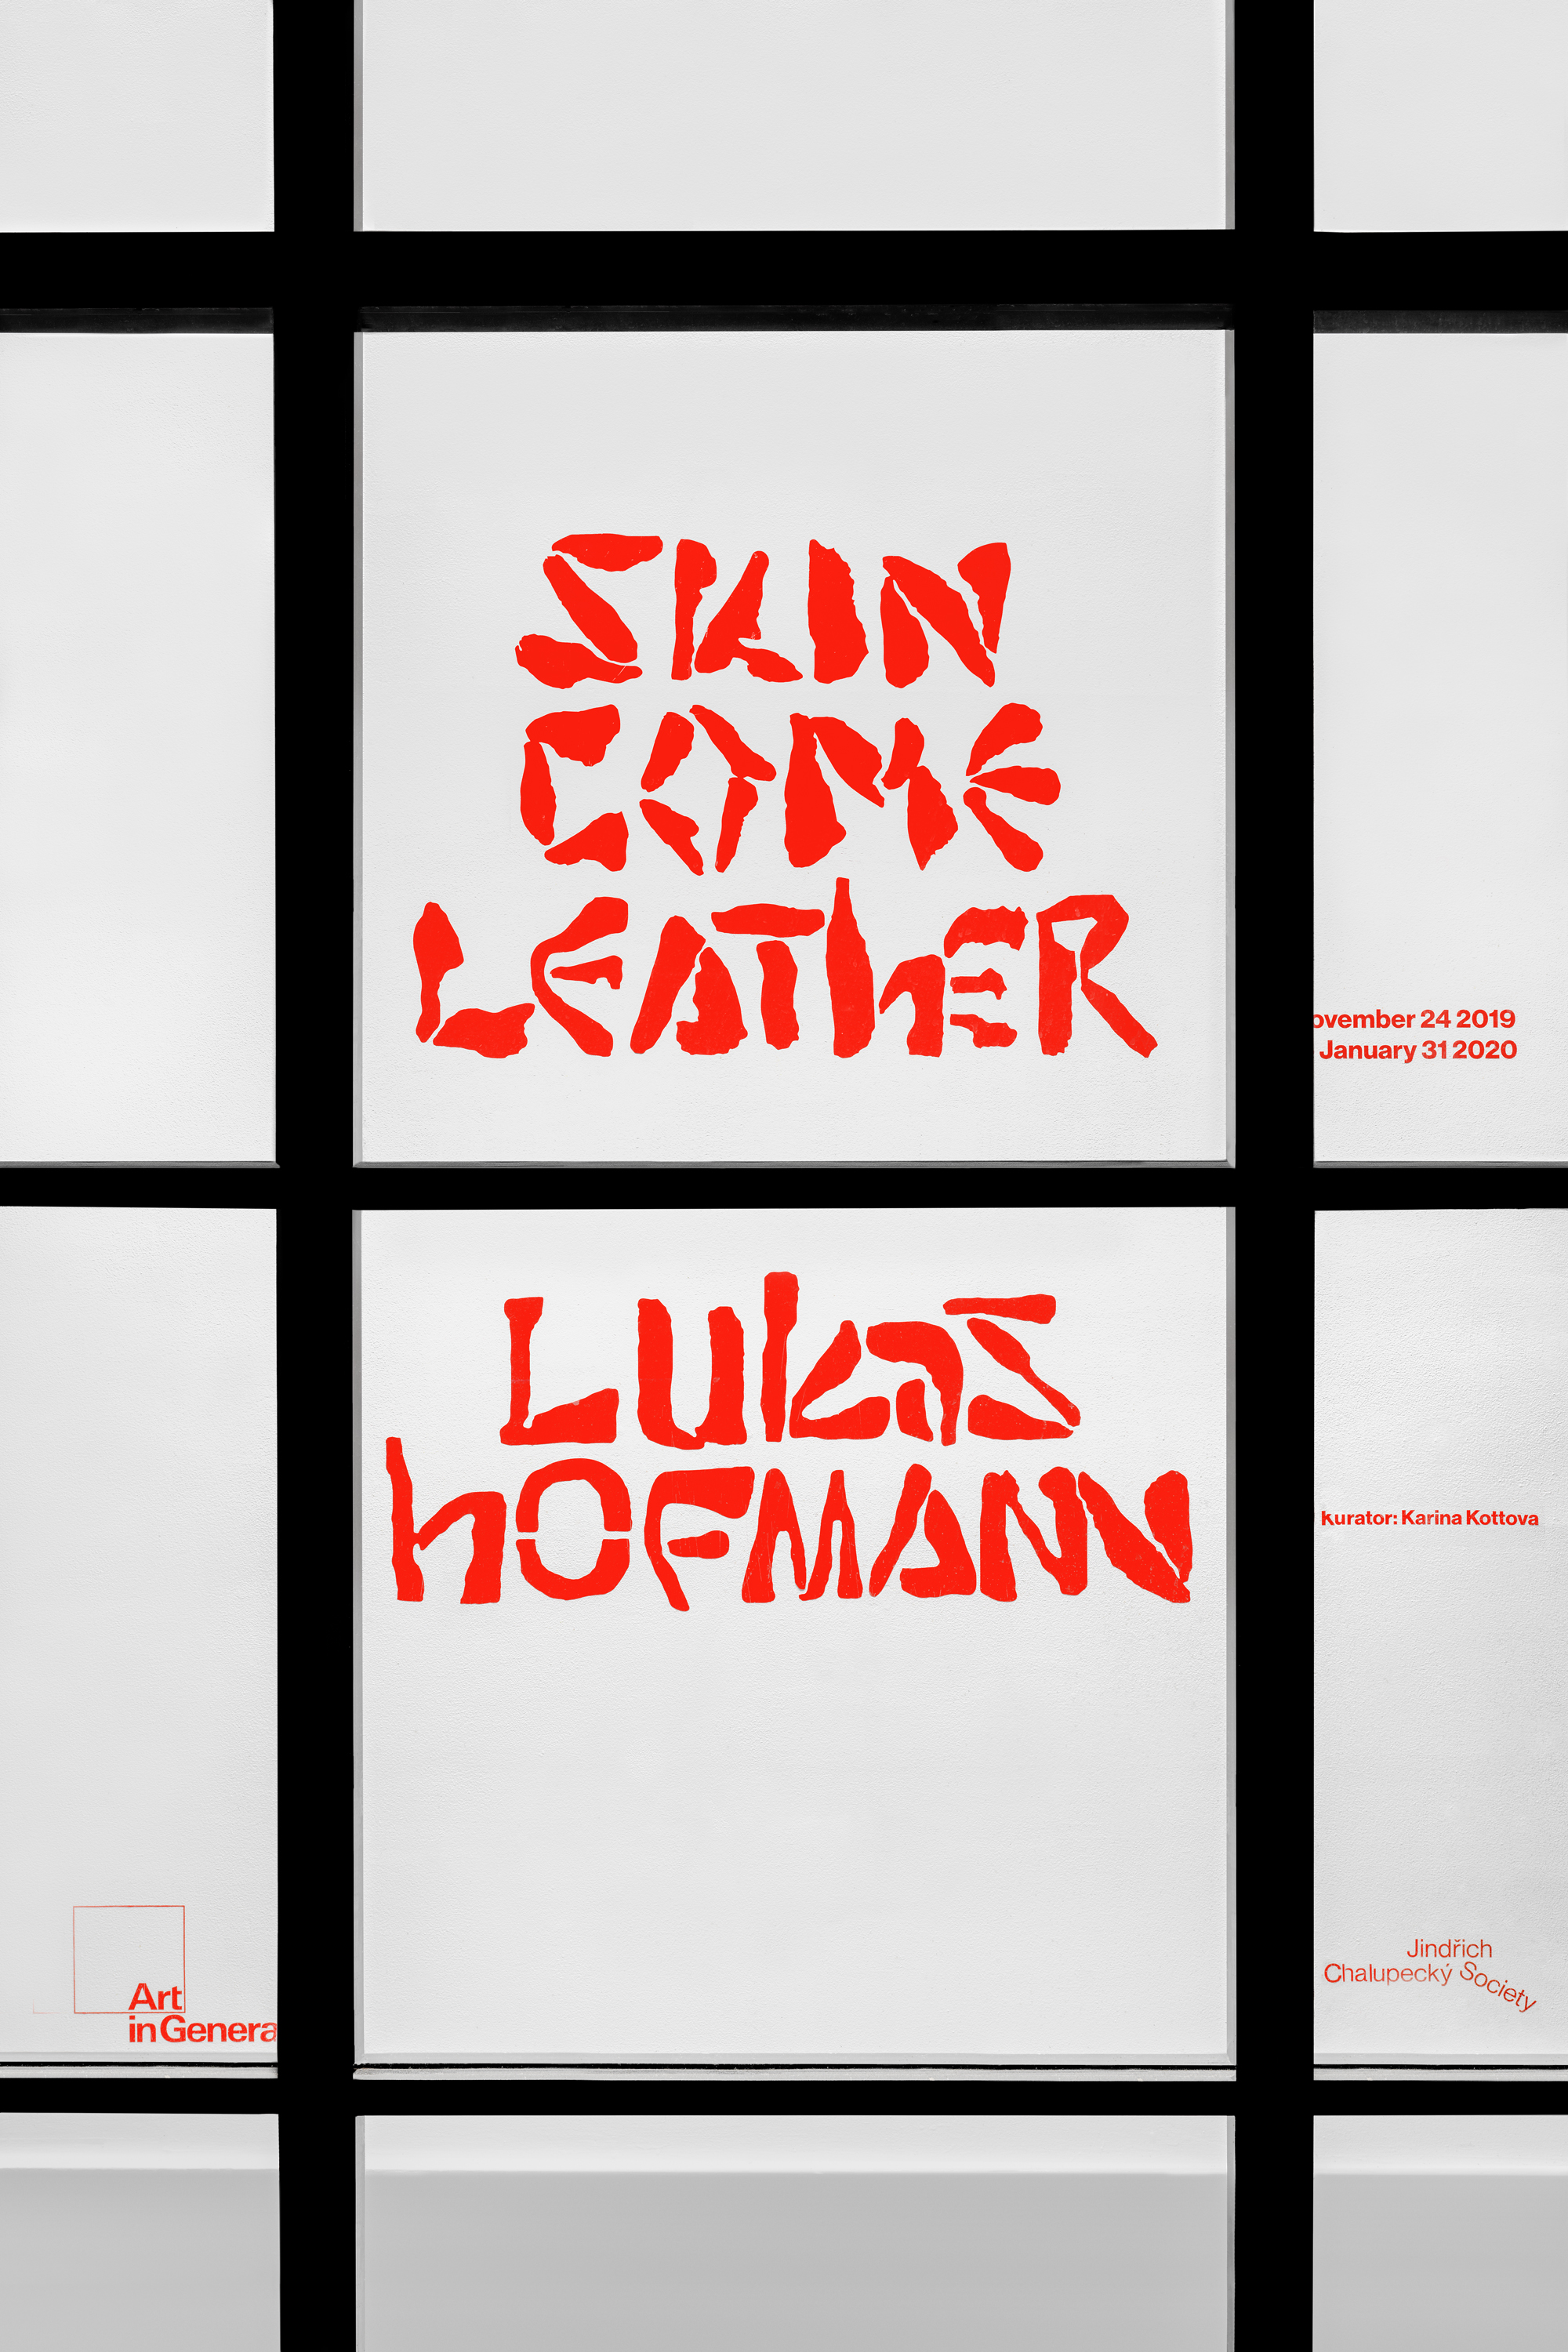 lukas hofmann / saliva Skin Come Leather (NYC)